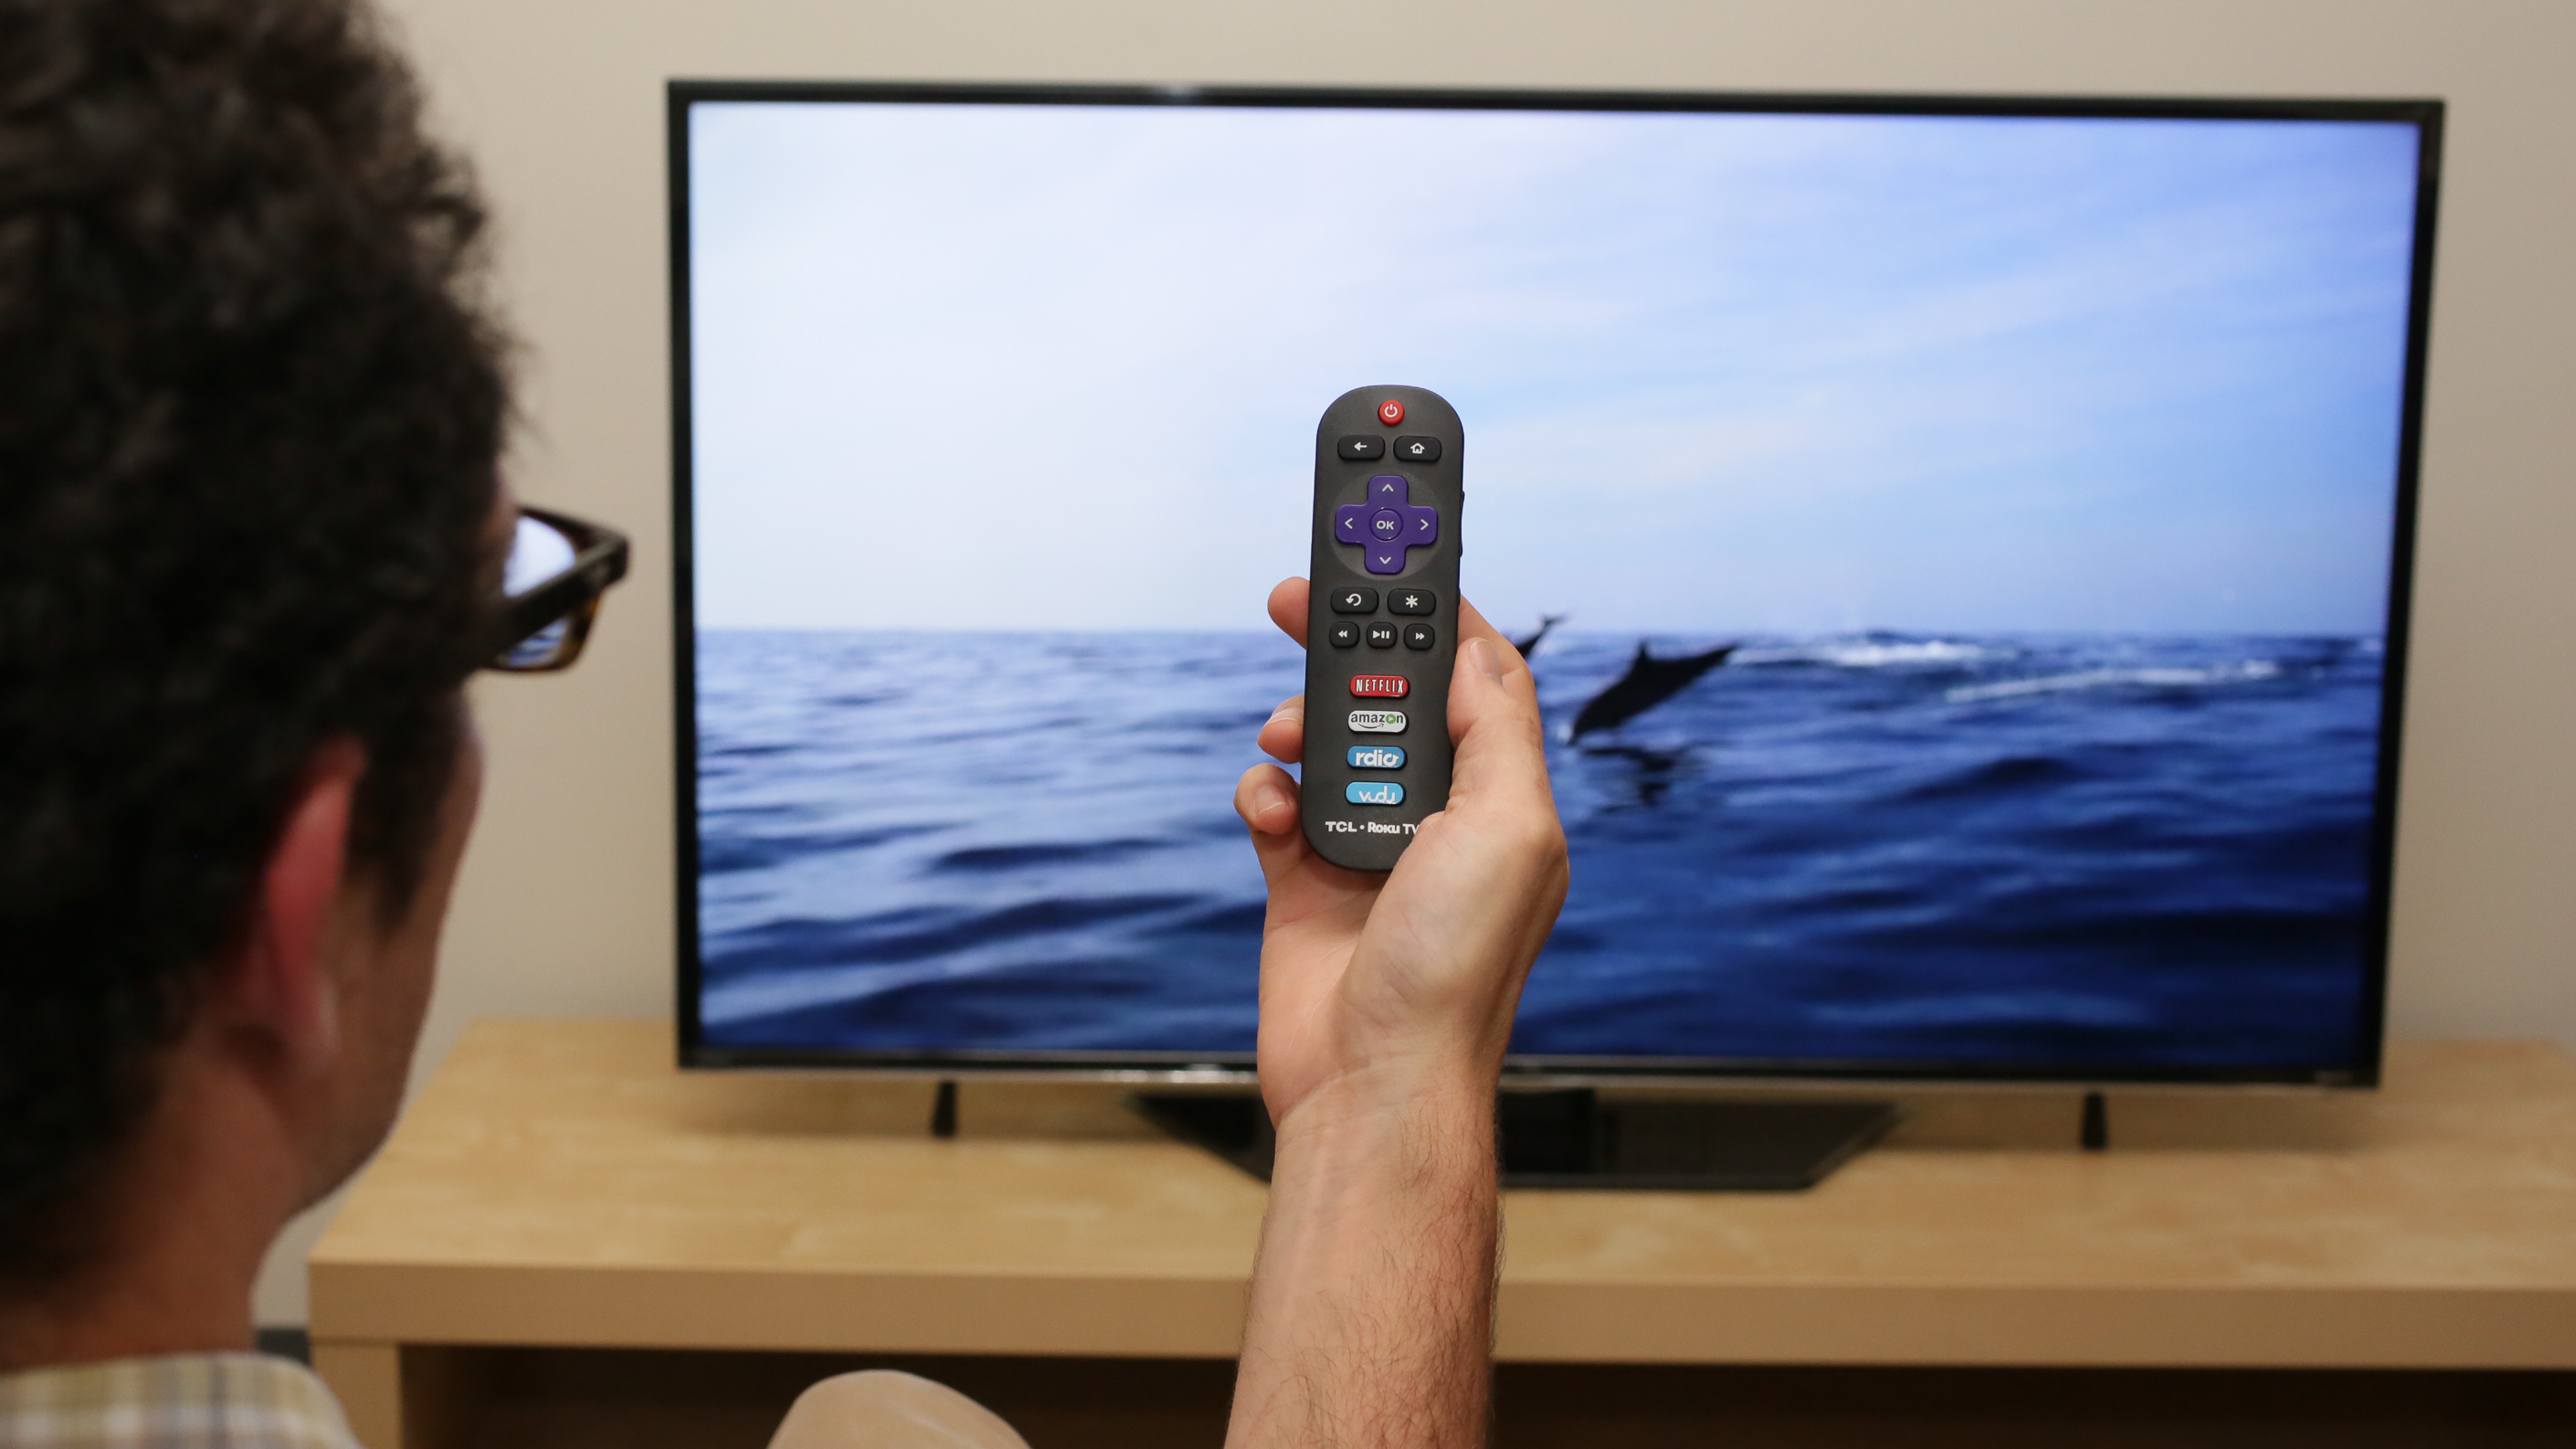 A better Smart TV for the best price